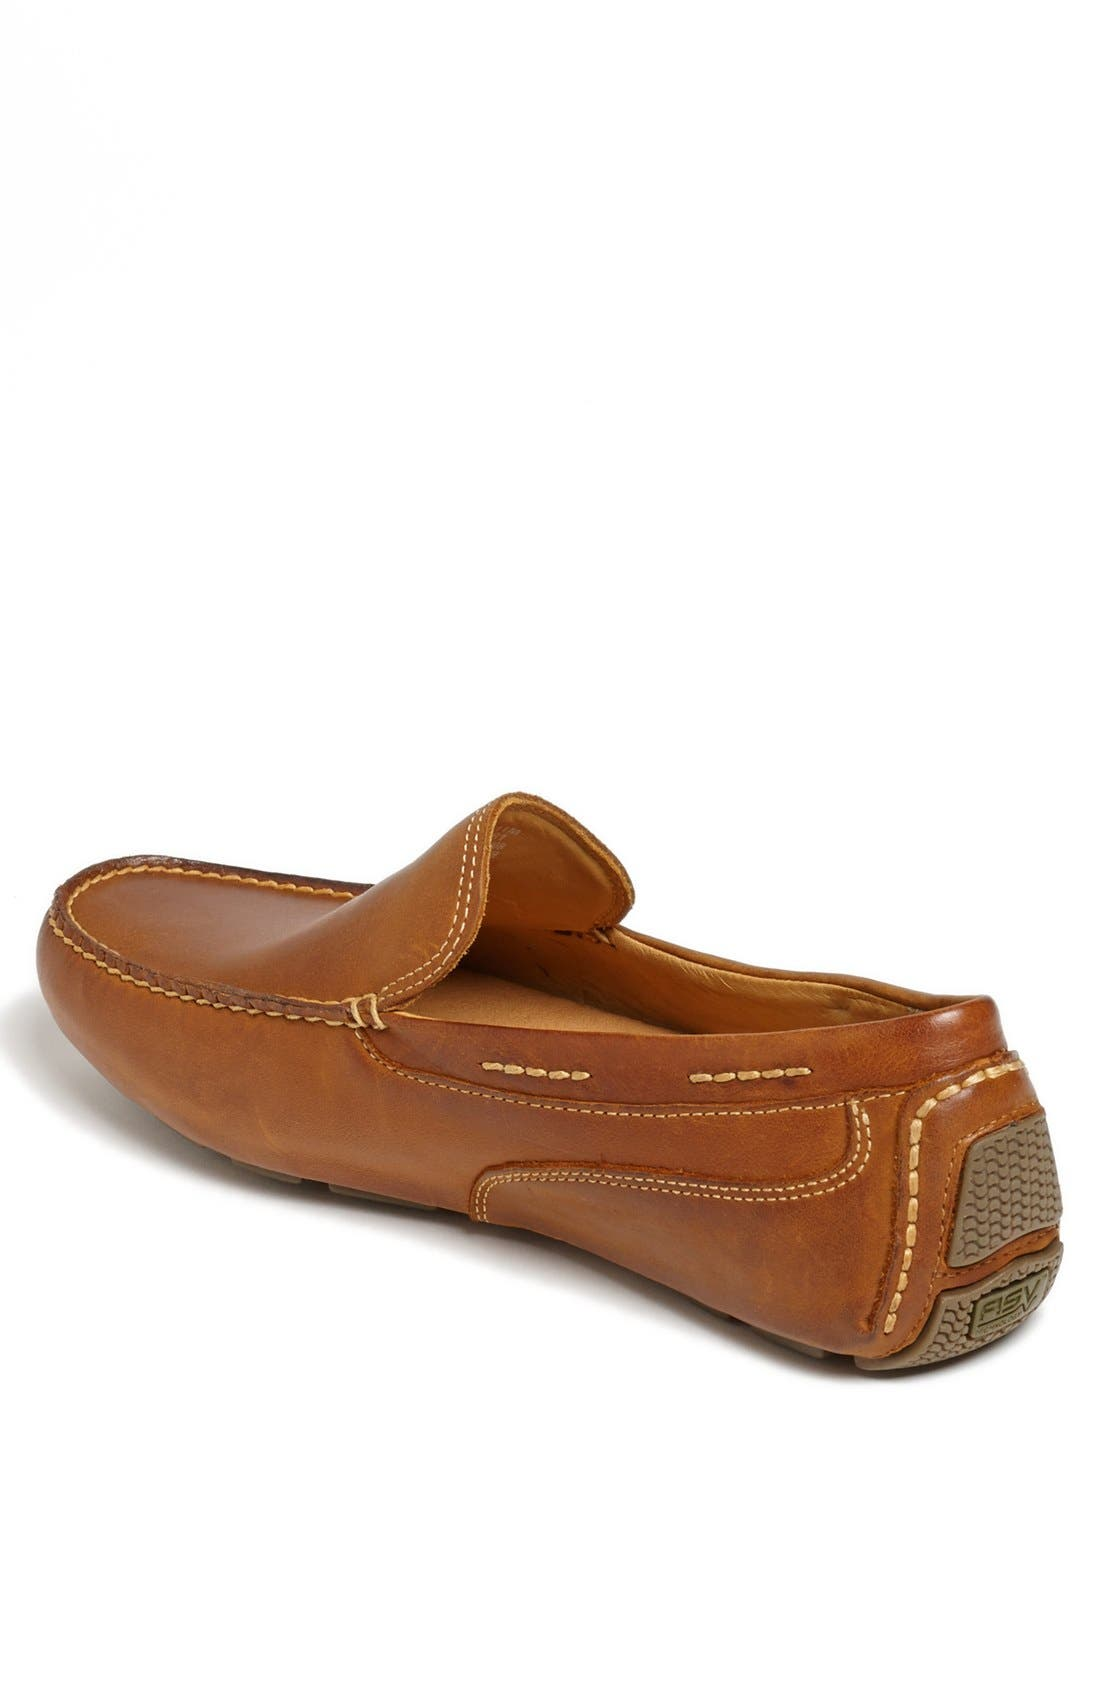 Alternate Image 2  - Sperry 'Gold Cup - Kennebunk' Driving Shoe